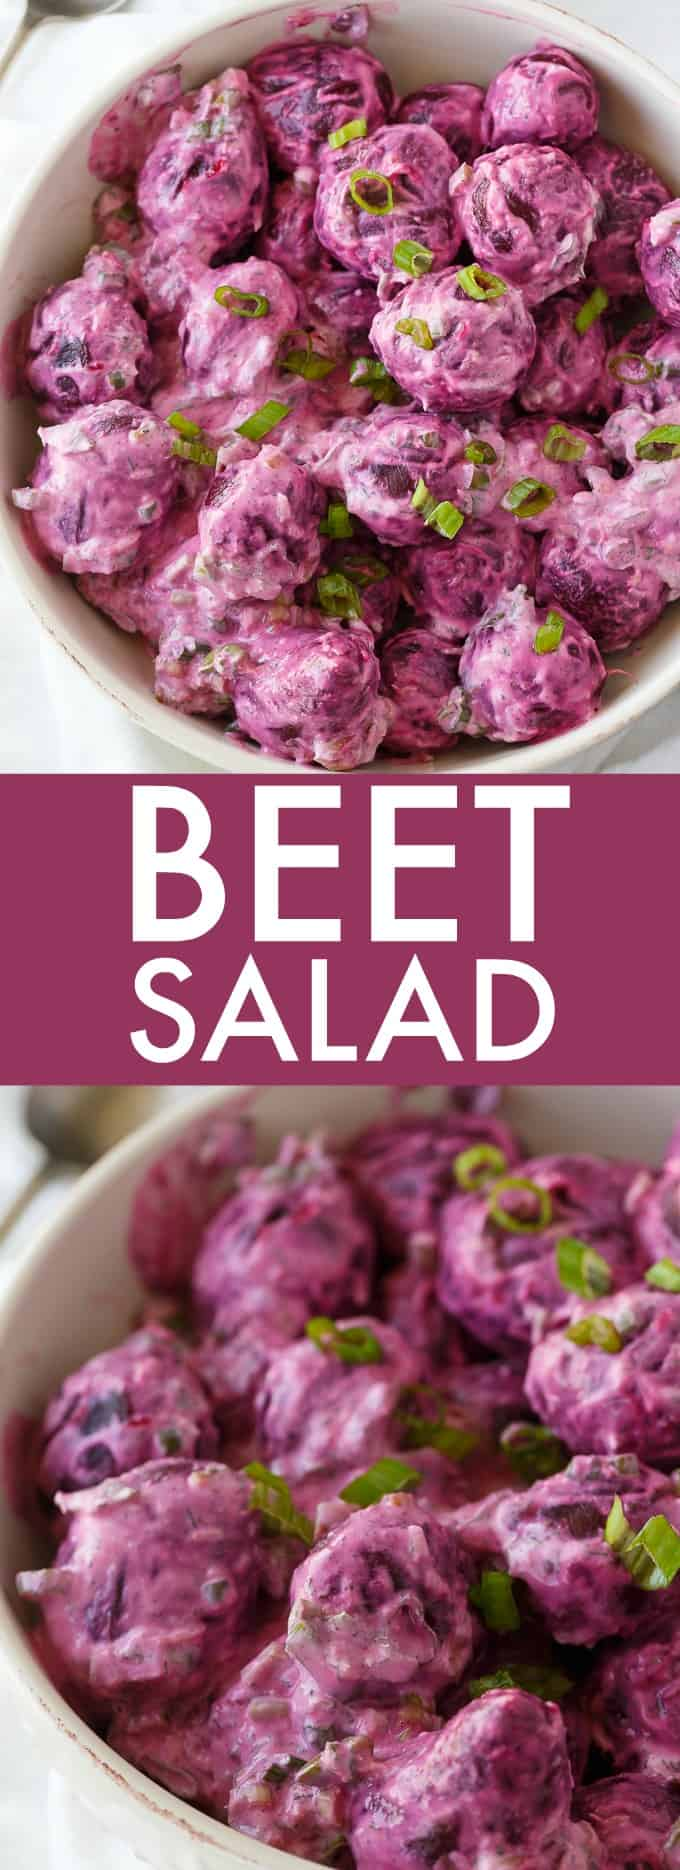 Beet Salad - The most beautiful vegetable salad! These pickled beets and green onions are surrounded by a creamy horseradish dressing and dill for an amazing side dish.